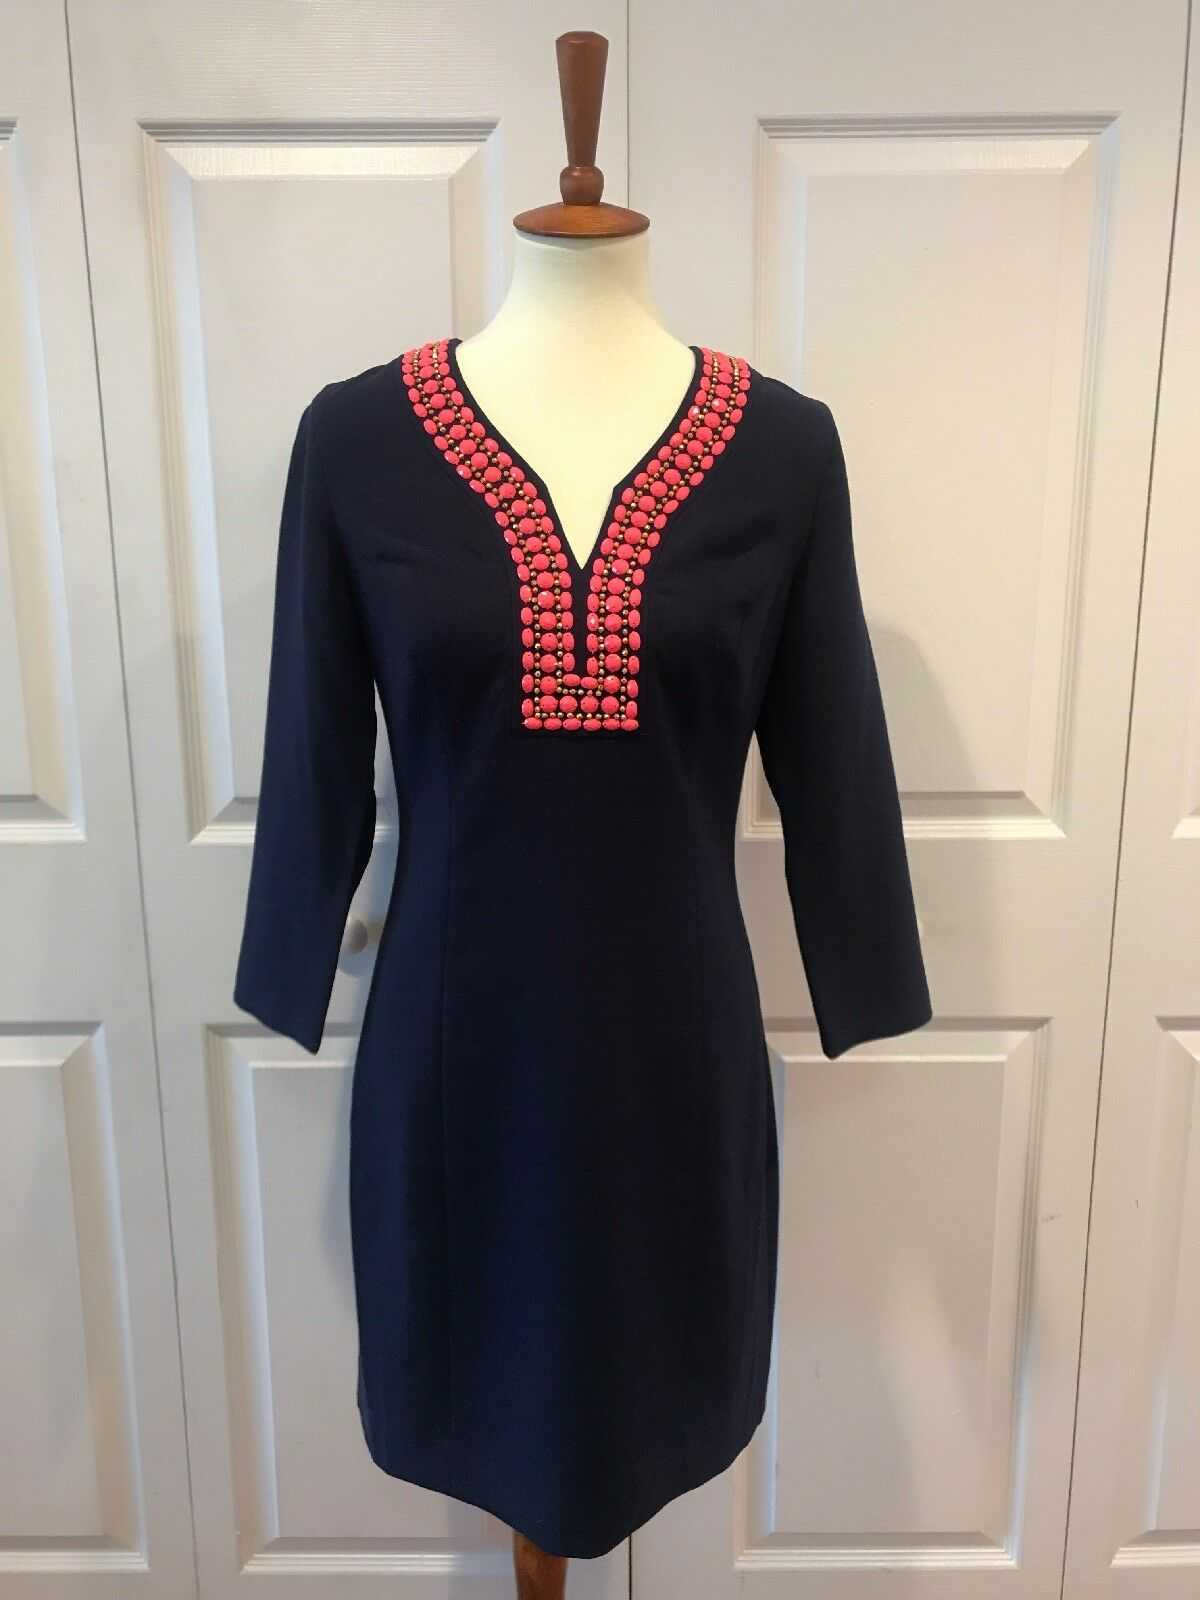 Lily Pulitzer Navy bluee Tunic Dress With Tags, MINT CONDITION